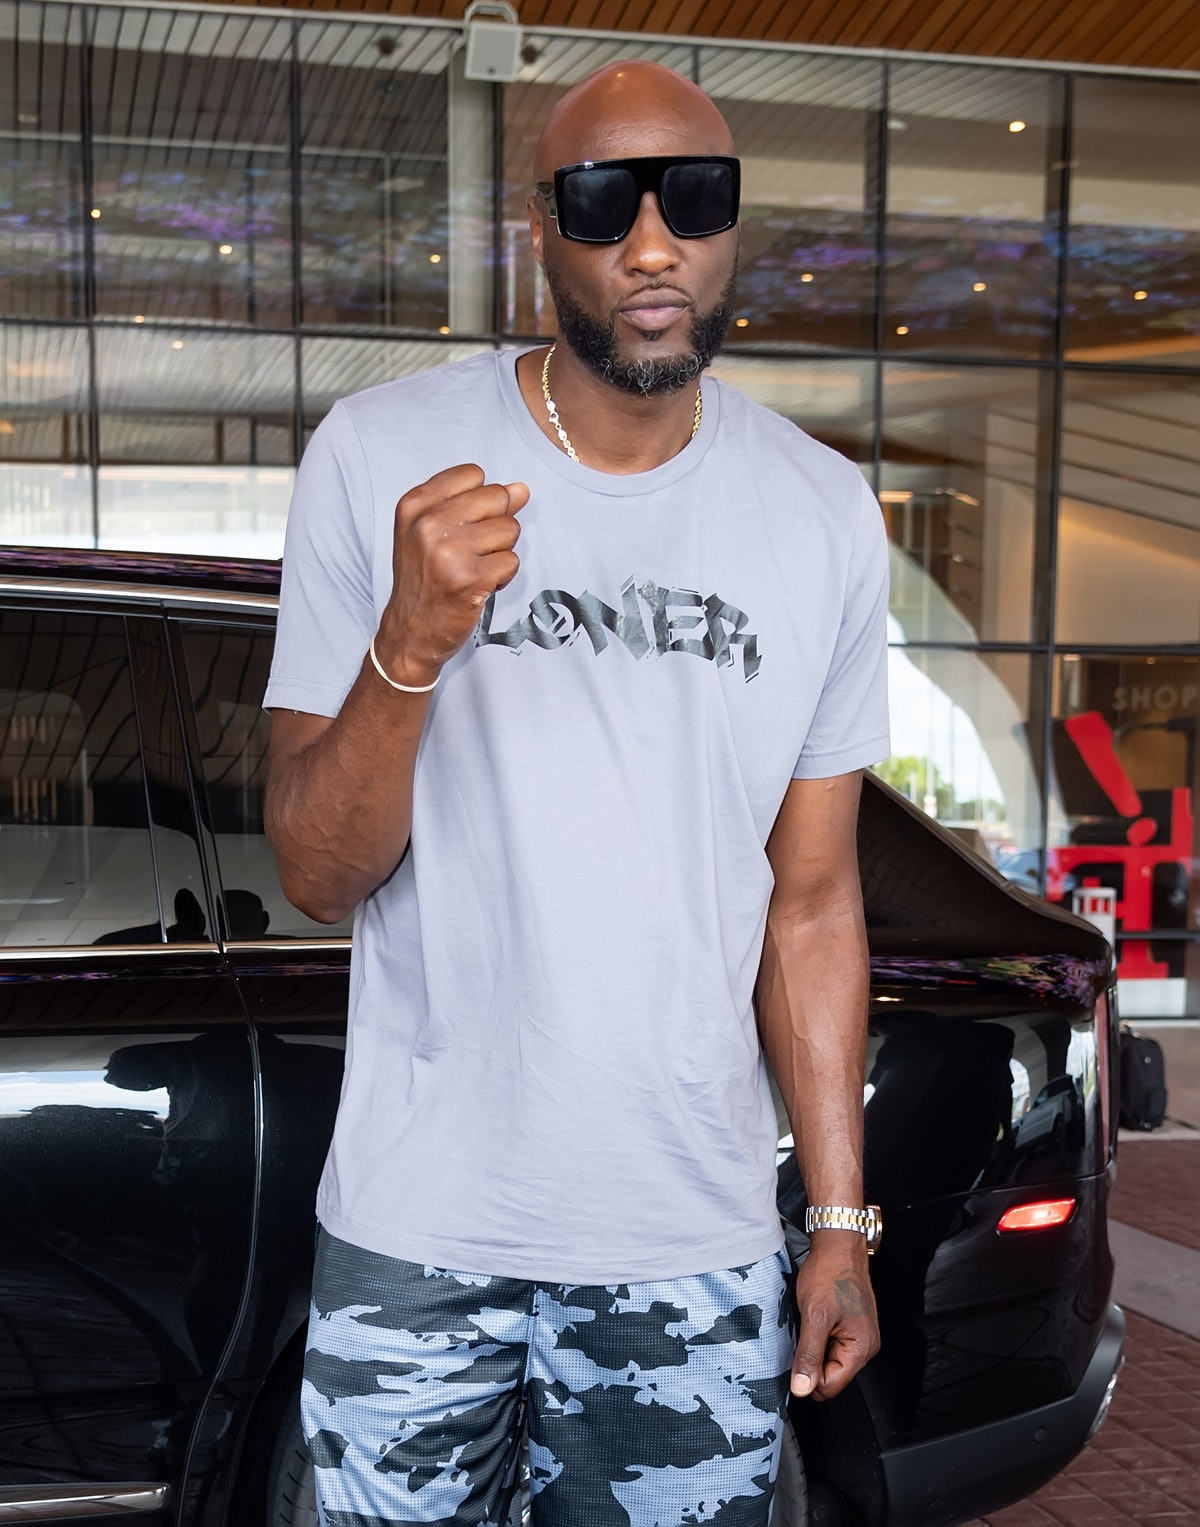 Lamar Odom attends his Celebrity Boxing contract signing to defend his title in an upcoming match at...